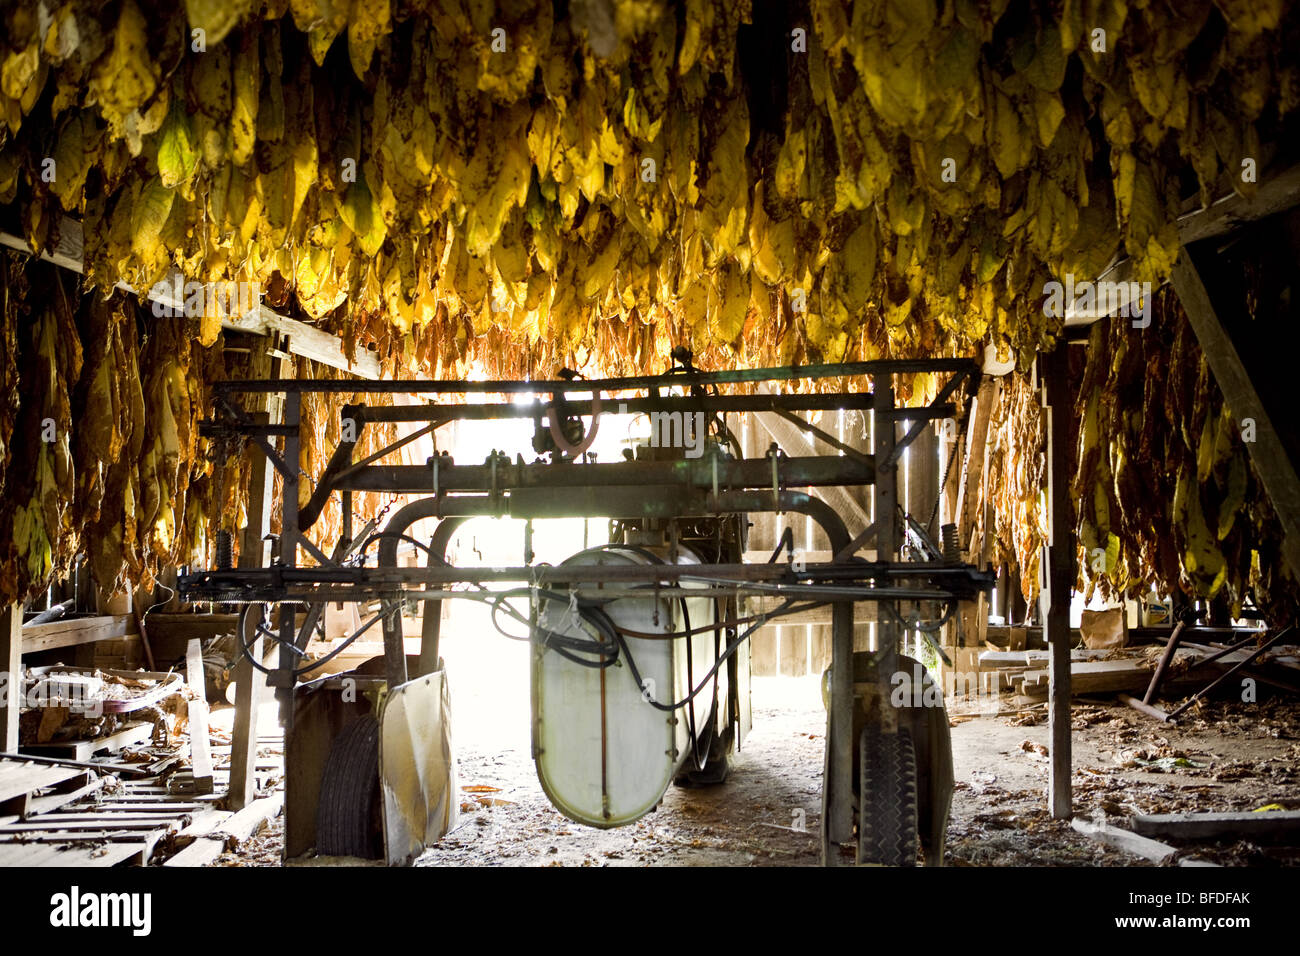 Farm machinery in a tobacco barn. - Stock Image